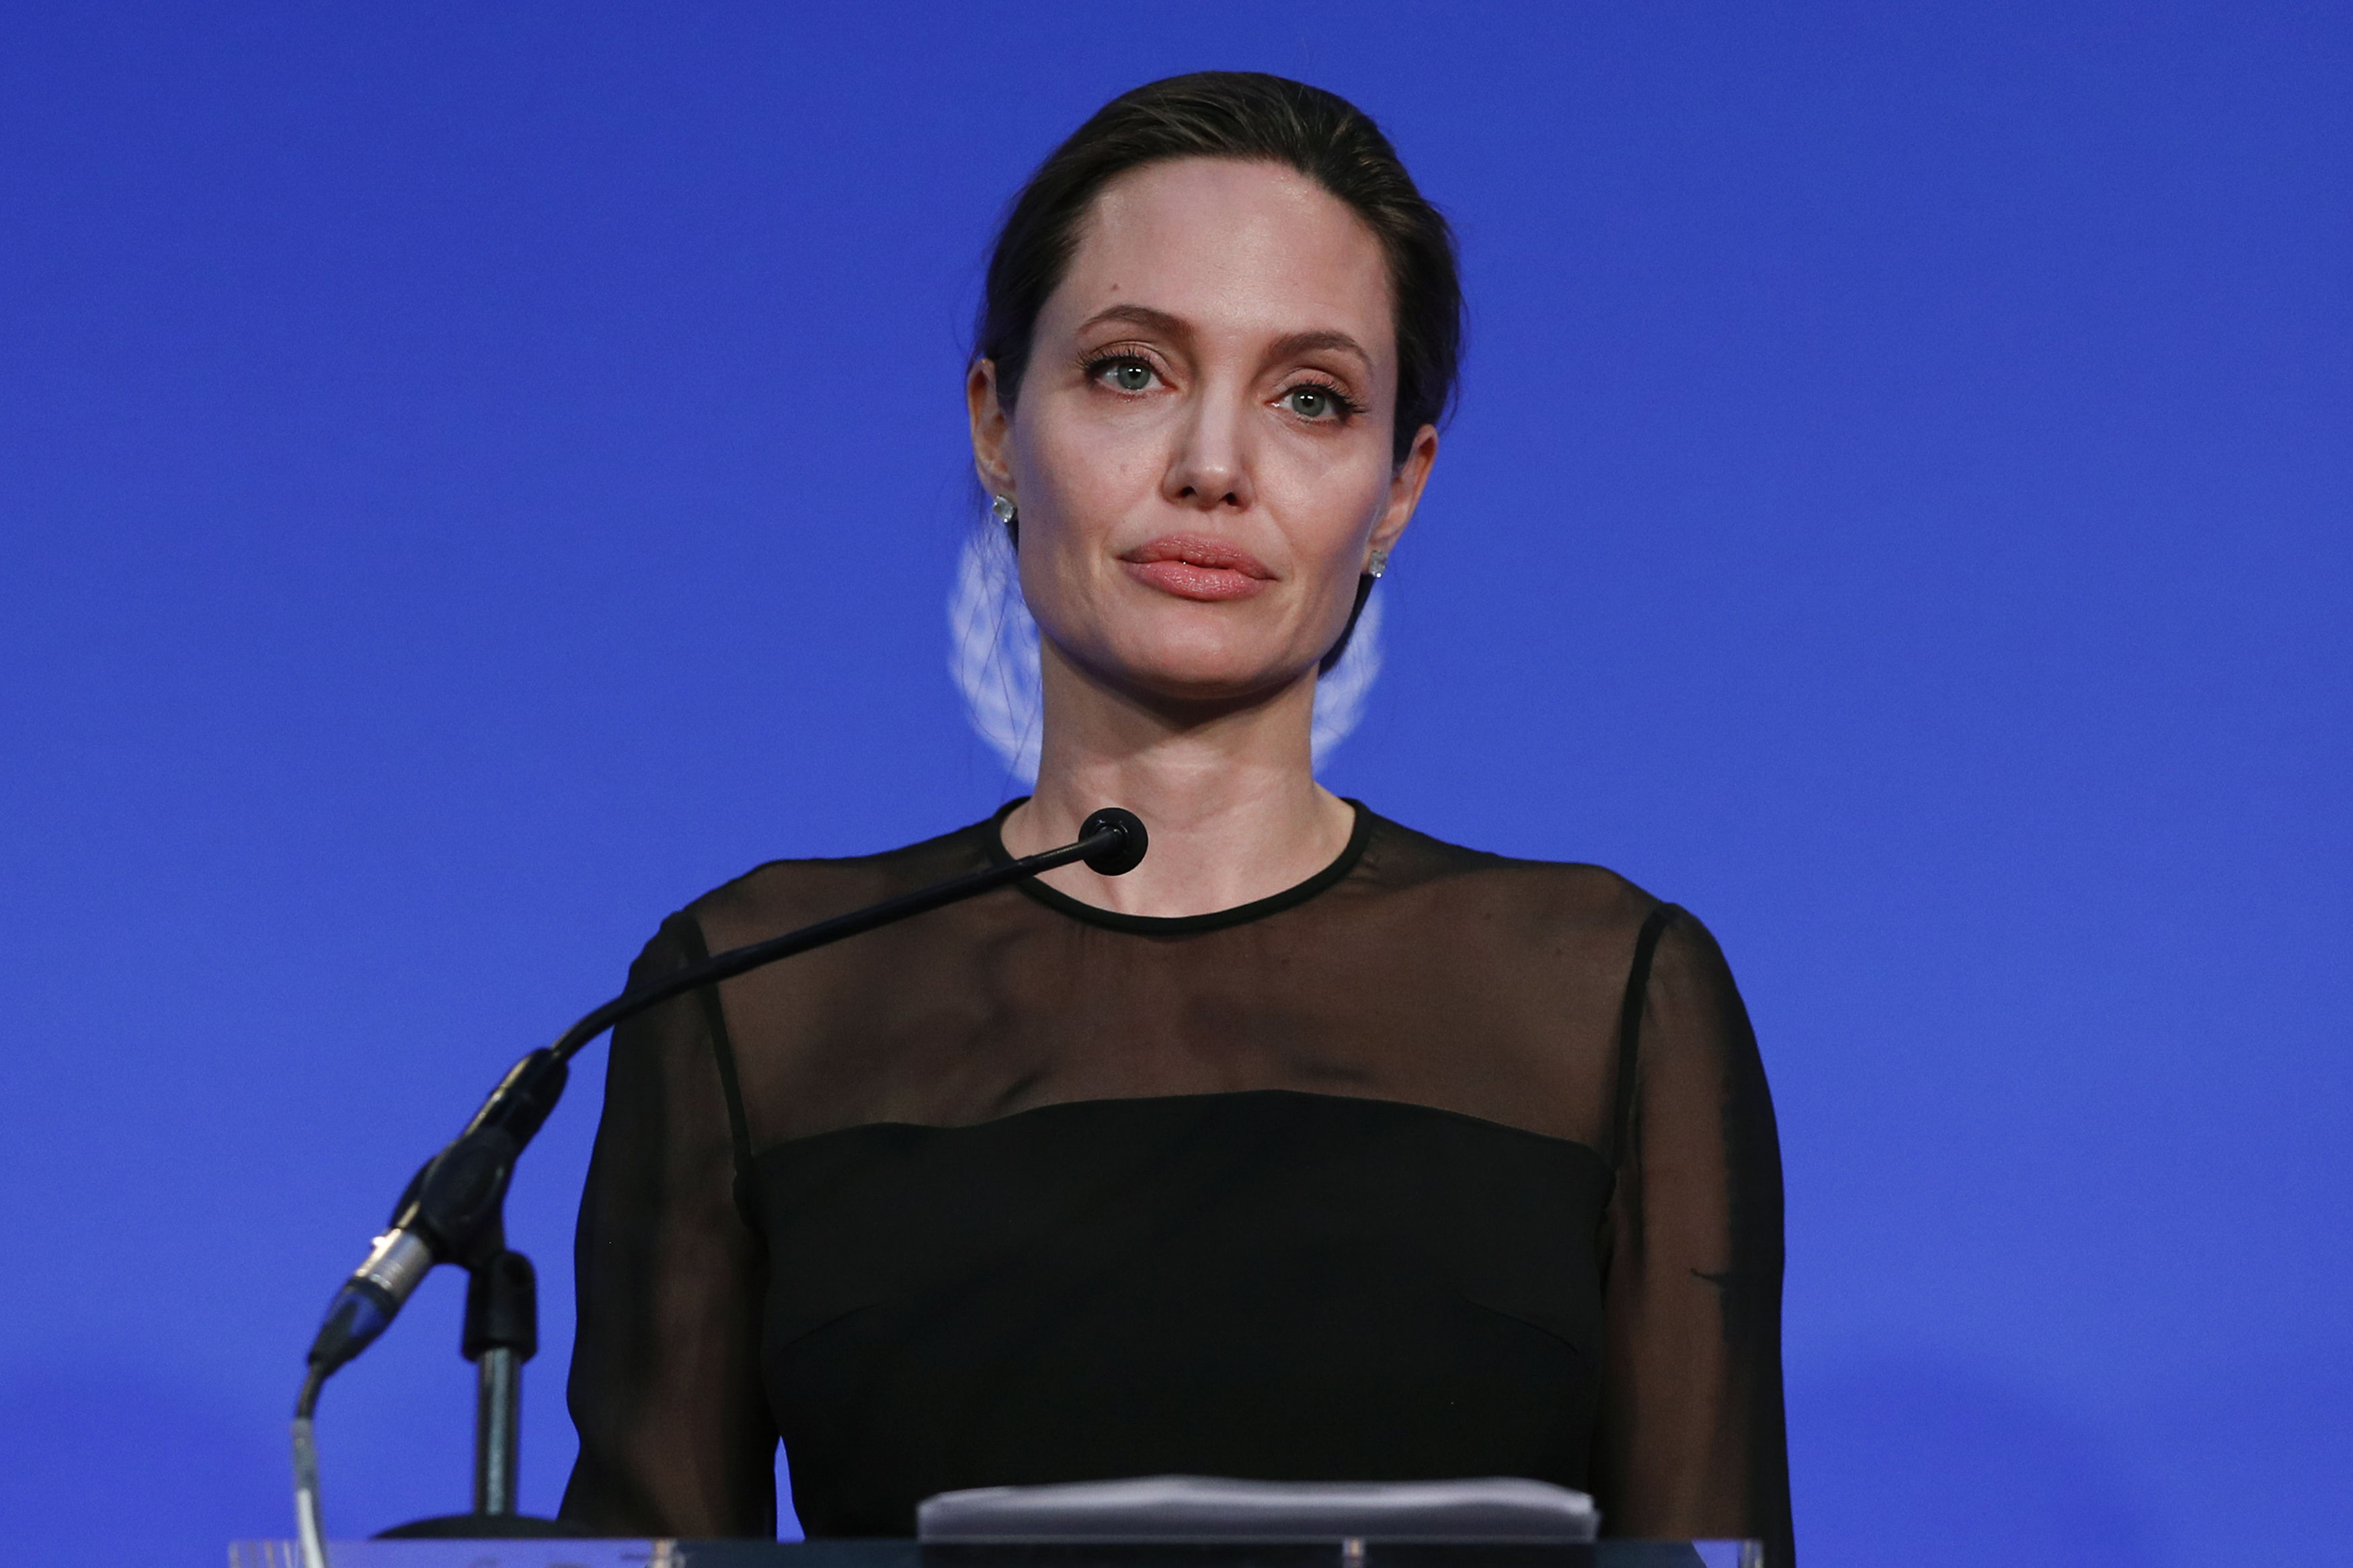 Angelina Jolie speaks during the UN Peacekeeping Defence Ministerial (Adrian Dennis/PA)